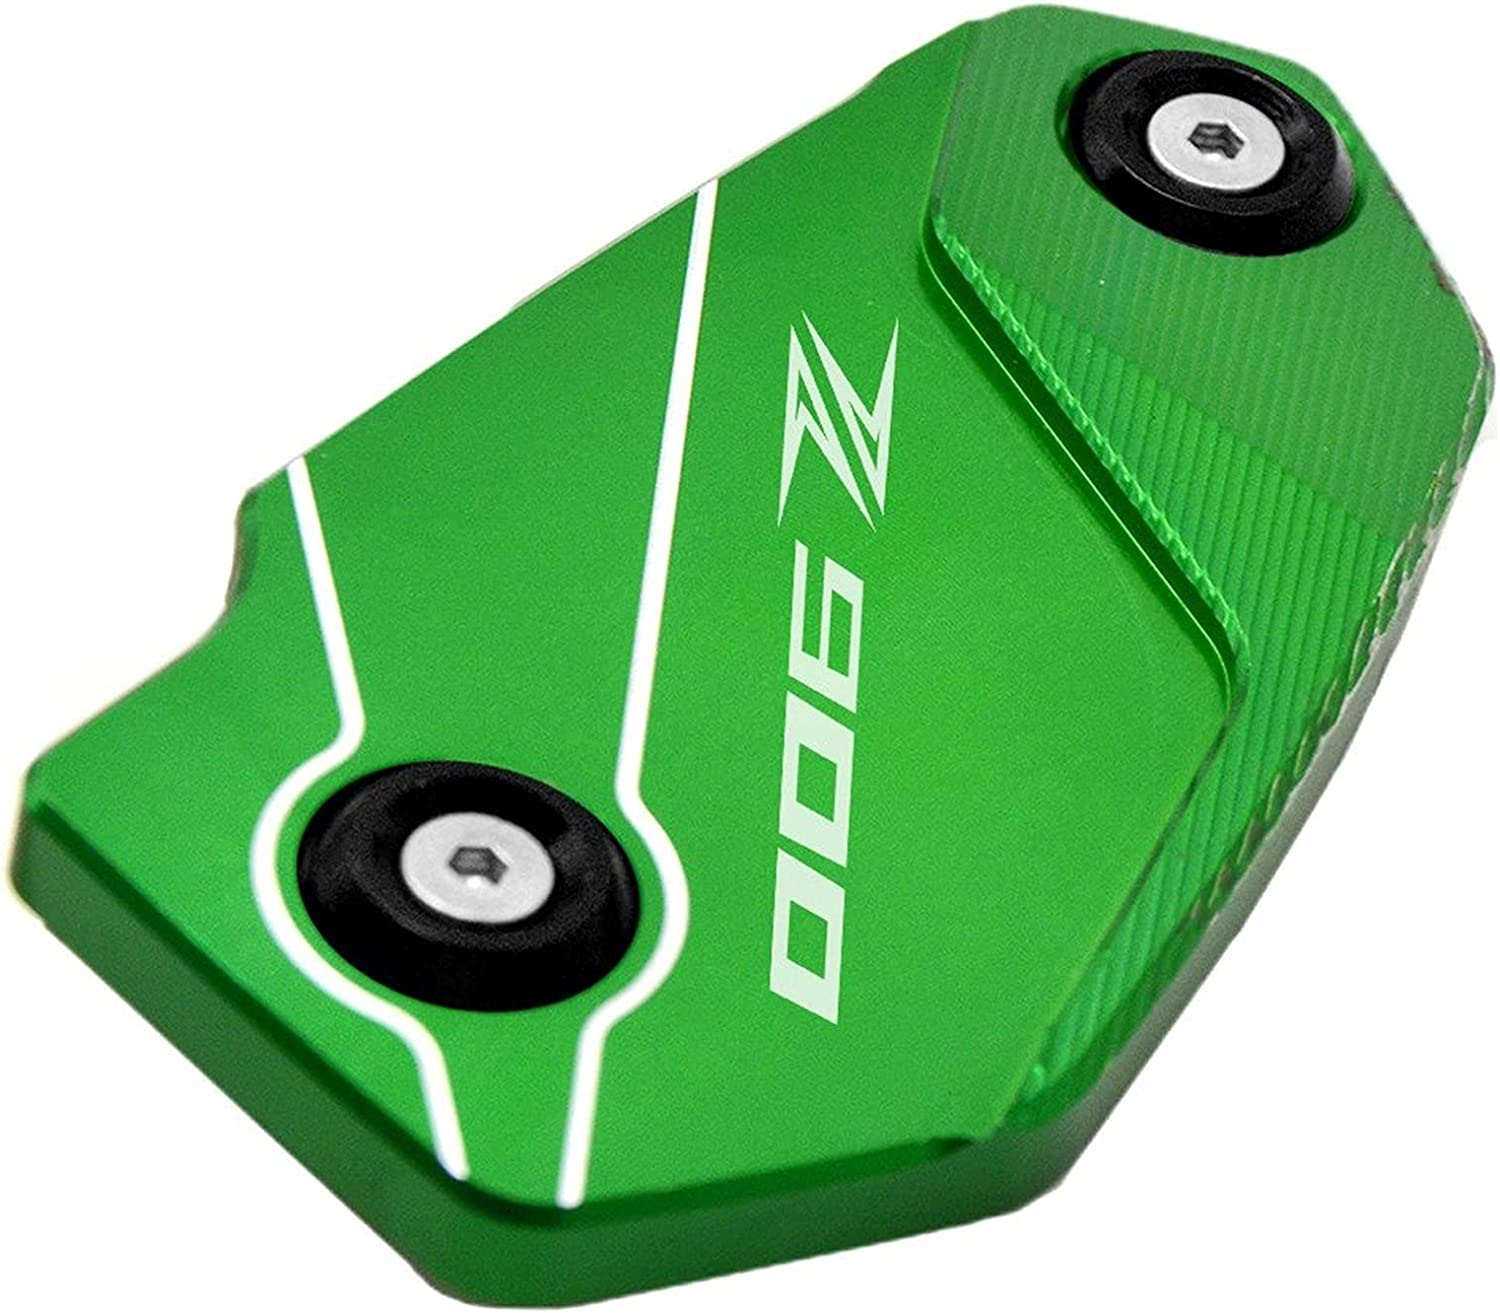 DYYD Brake Fluid Cap Covers Fixed price for sale for 900 Motorcy Z Kawasaki cheap 2017 Z900